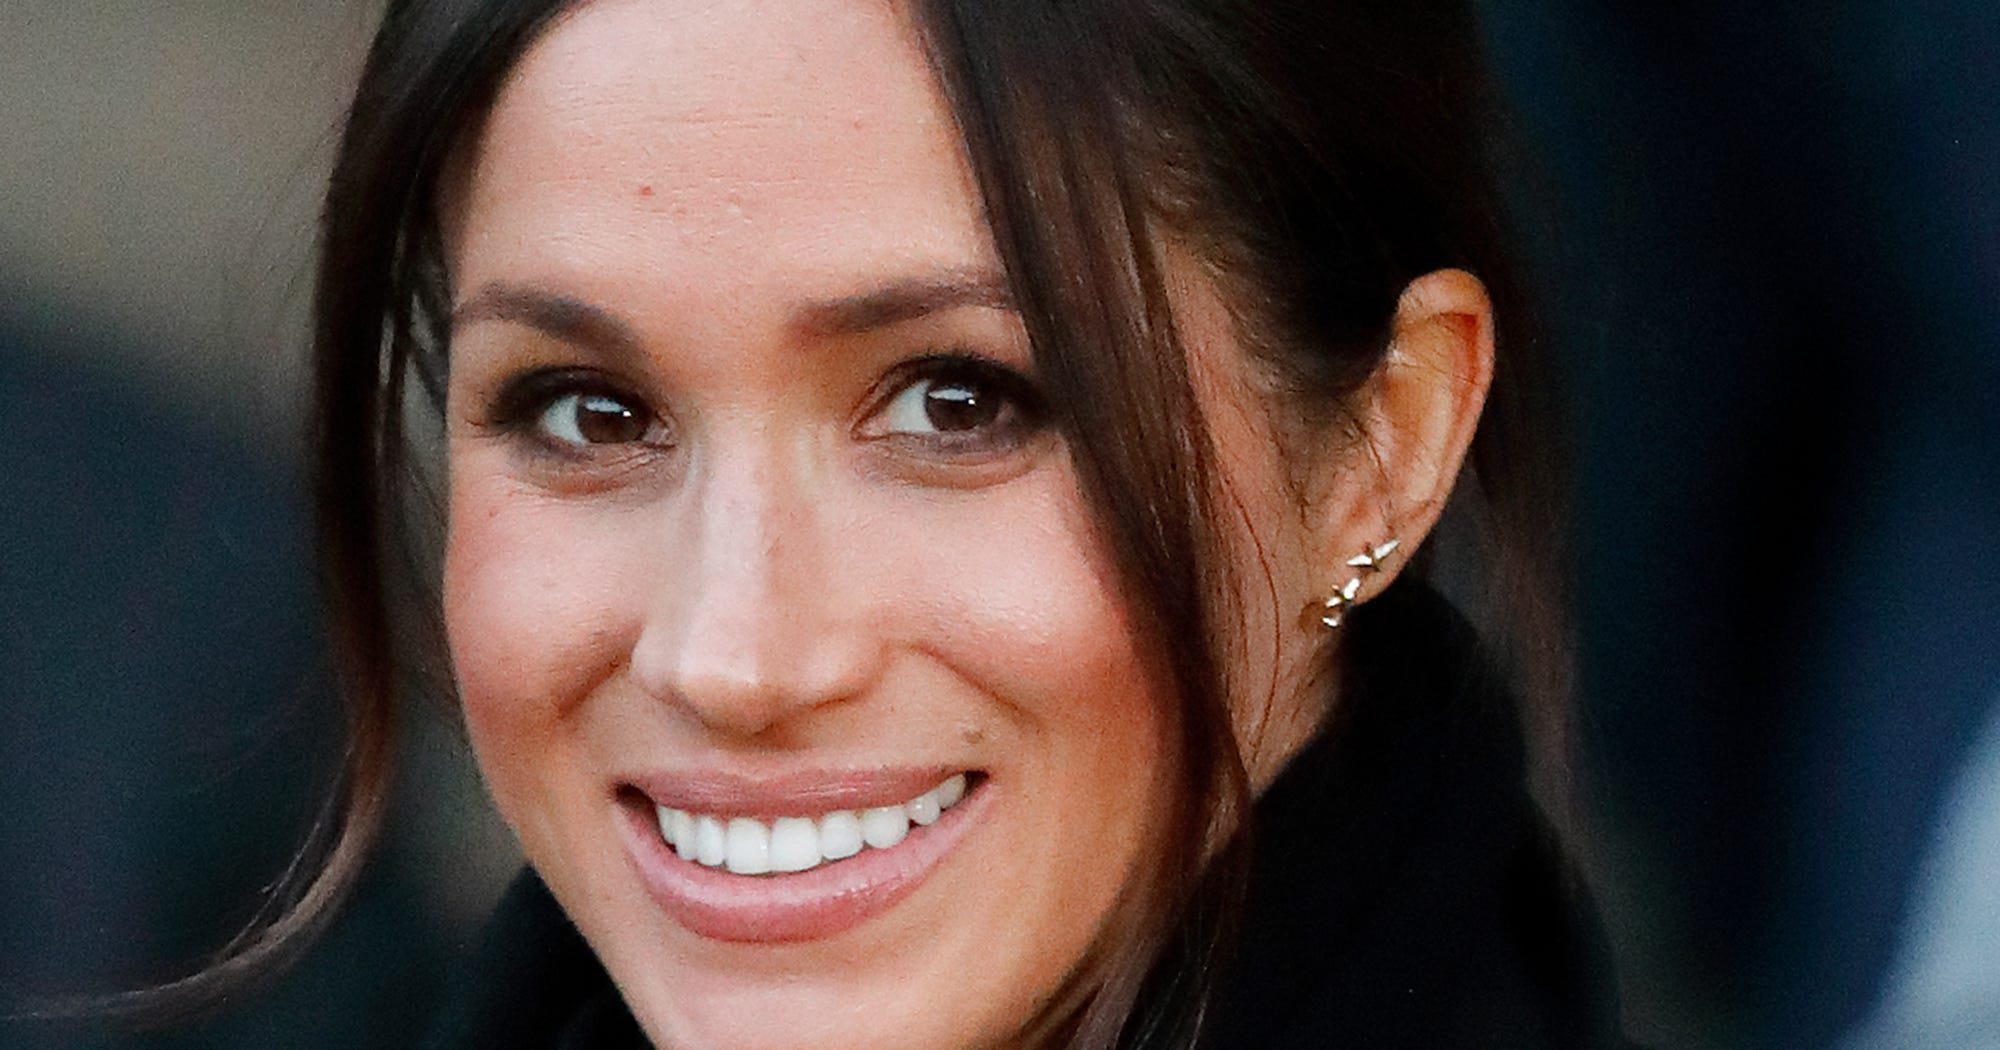 markle sex personals She recently won a meghan markle look-alike contest through dating site and definitely open to the royal dating pool meghan markle news sex & relationships.